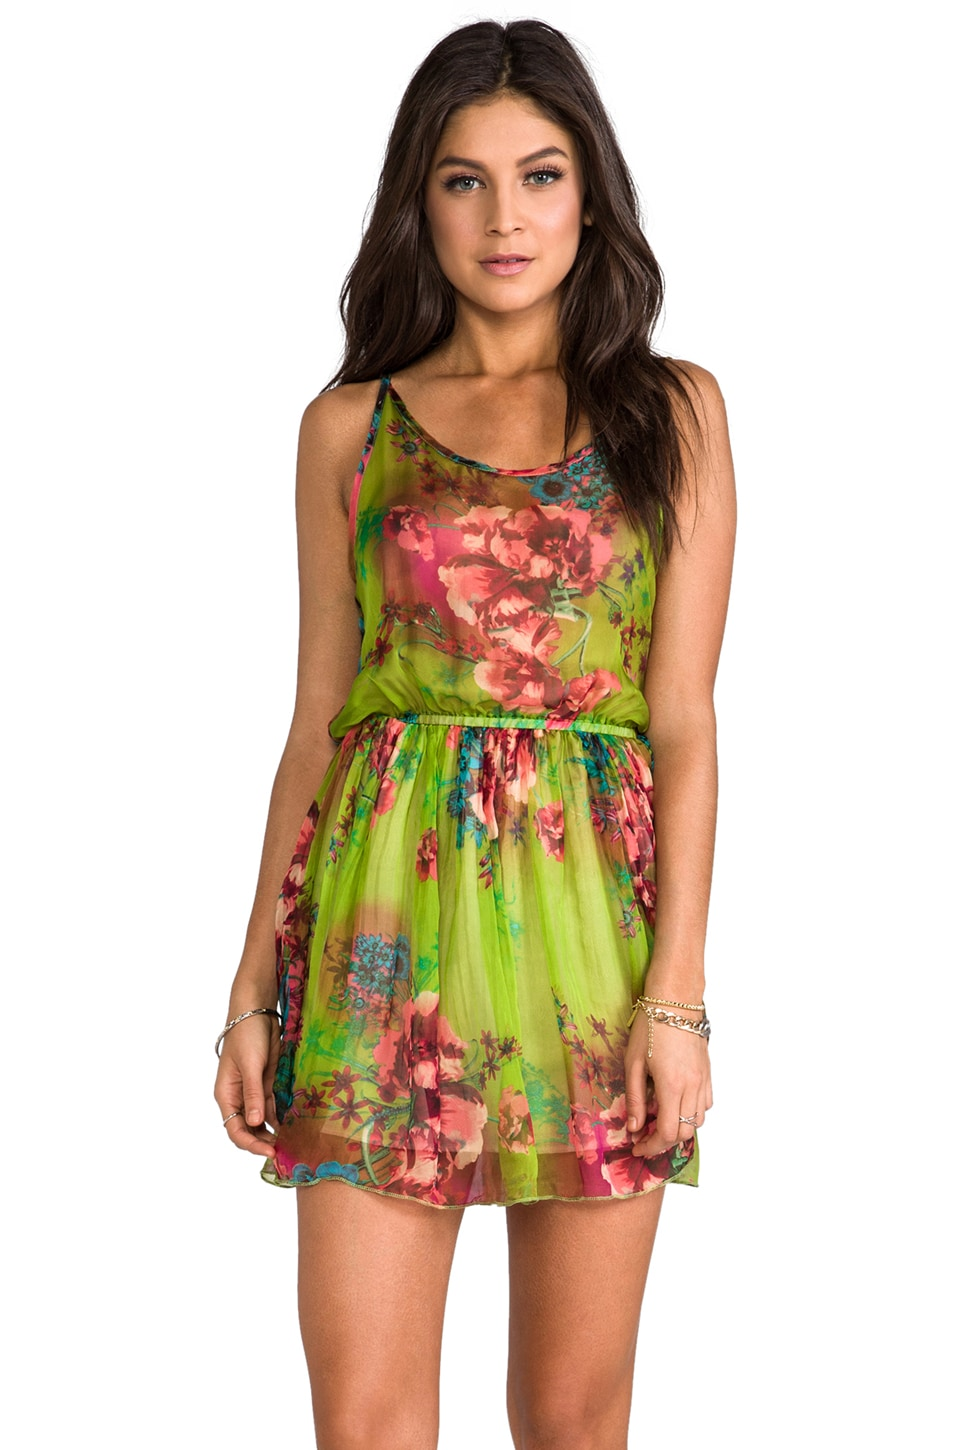 Gypsy Junkies Haze Pleated Mini in Lime Neon Bloom